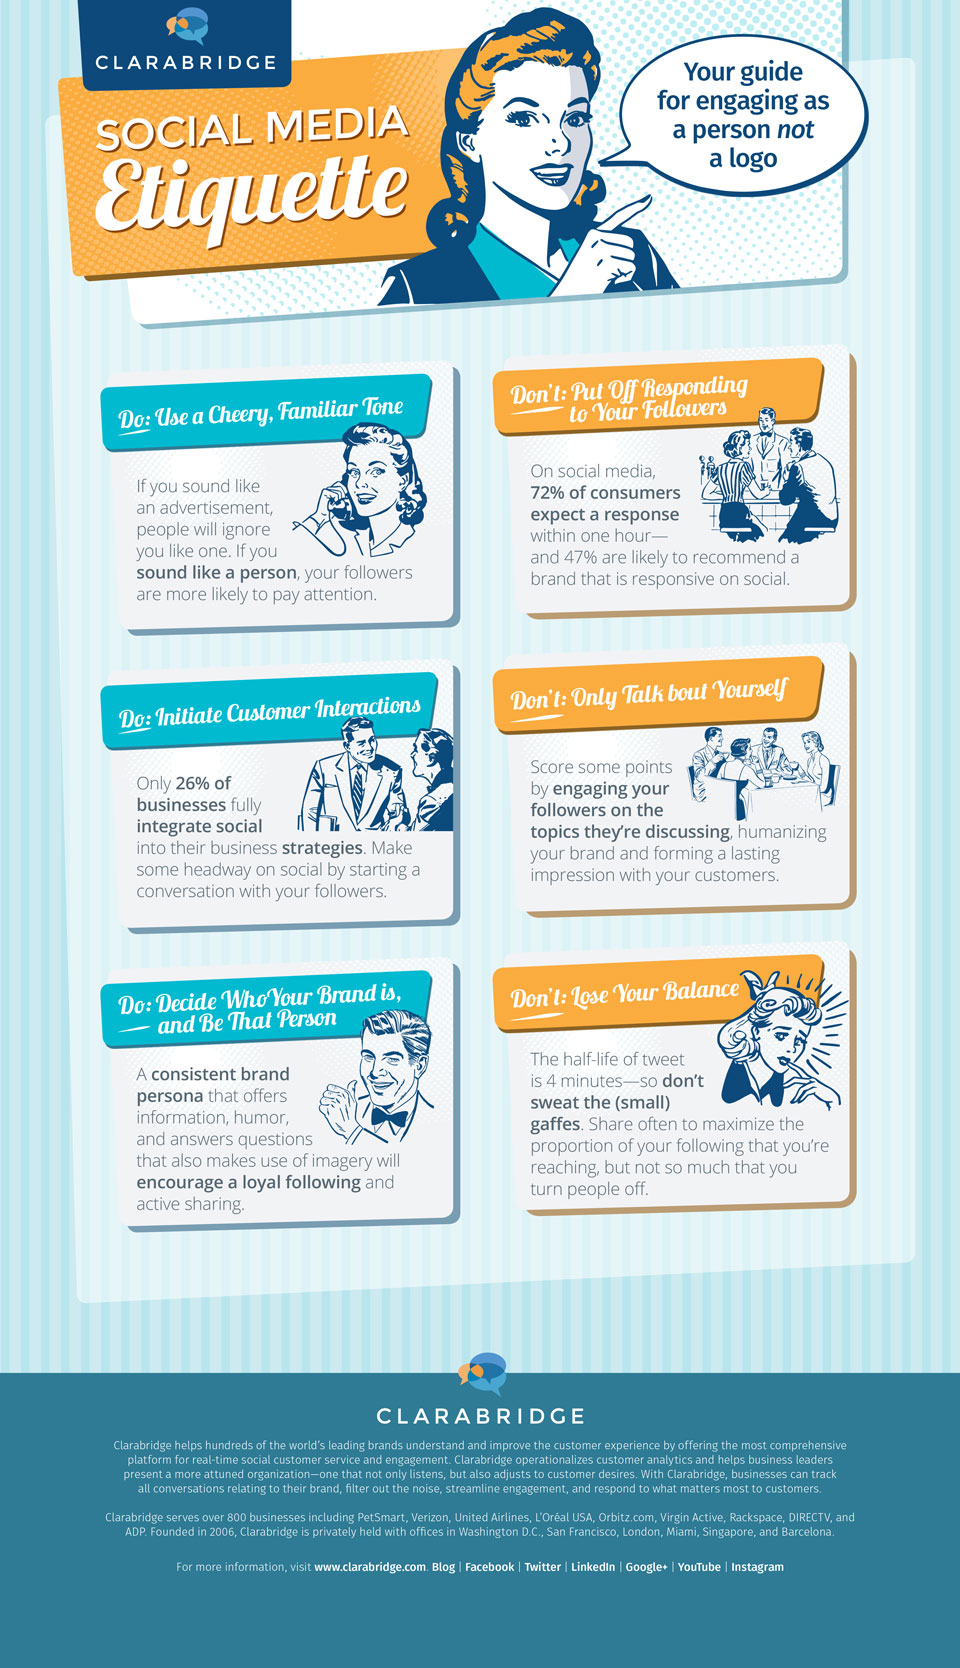 Infographic: Succeed on Social Media with Good Etiquette